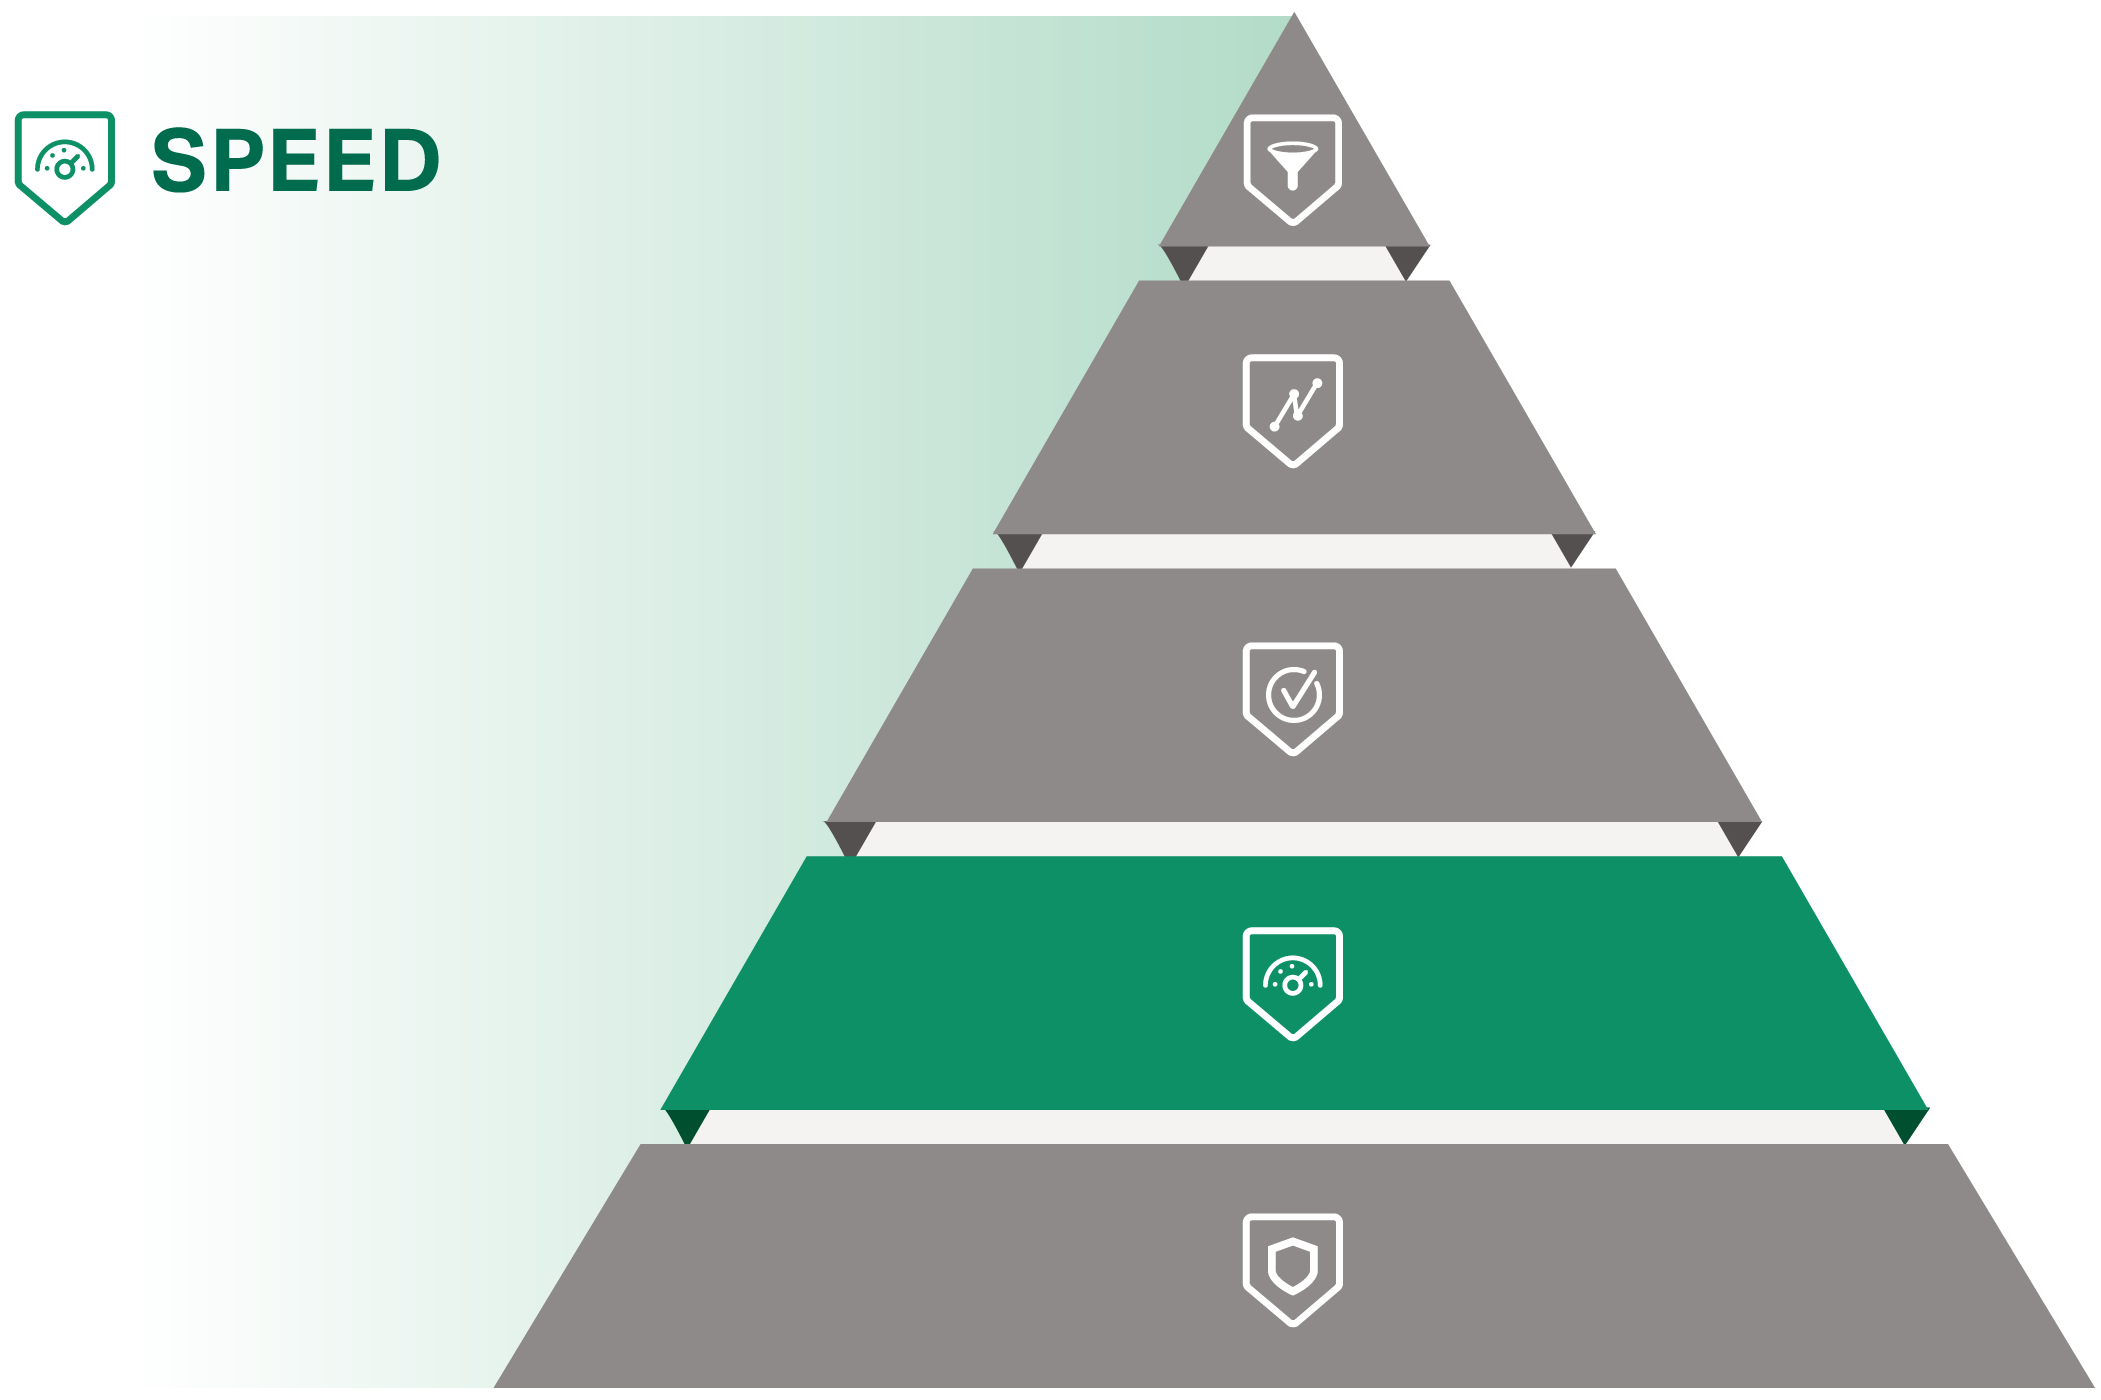 The Valet WordPress Healthcare Hierarchy. Speed is the second tier on the pyramid. The only thing more important is Security.